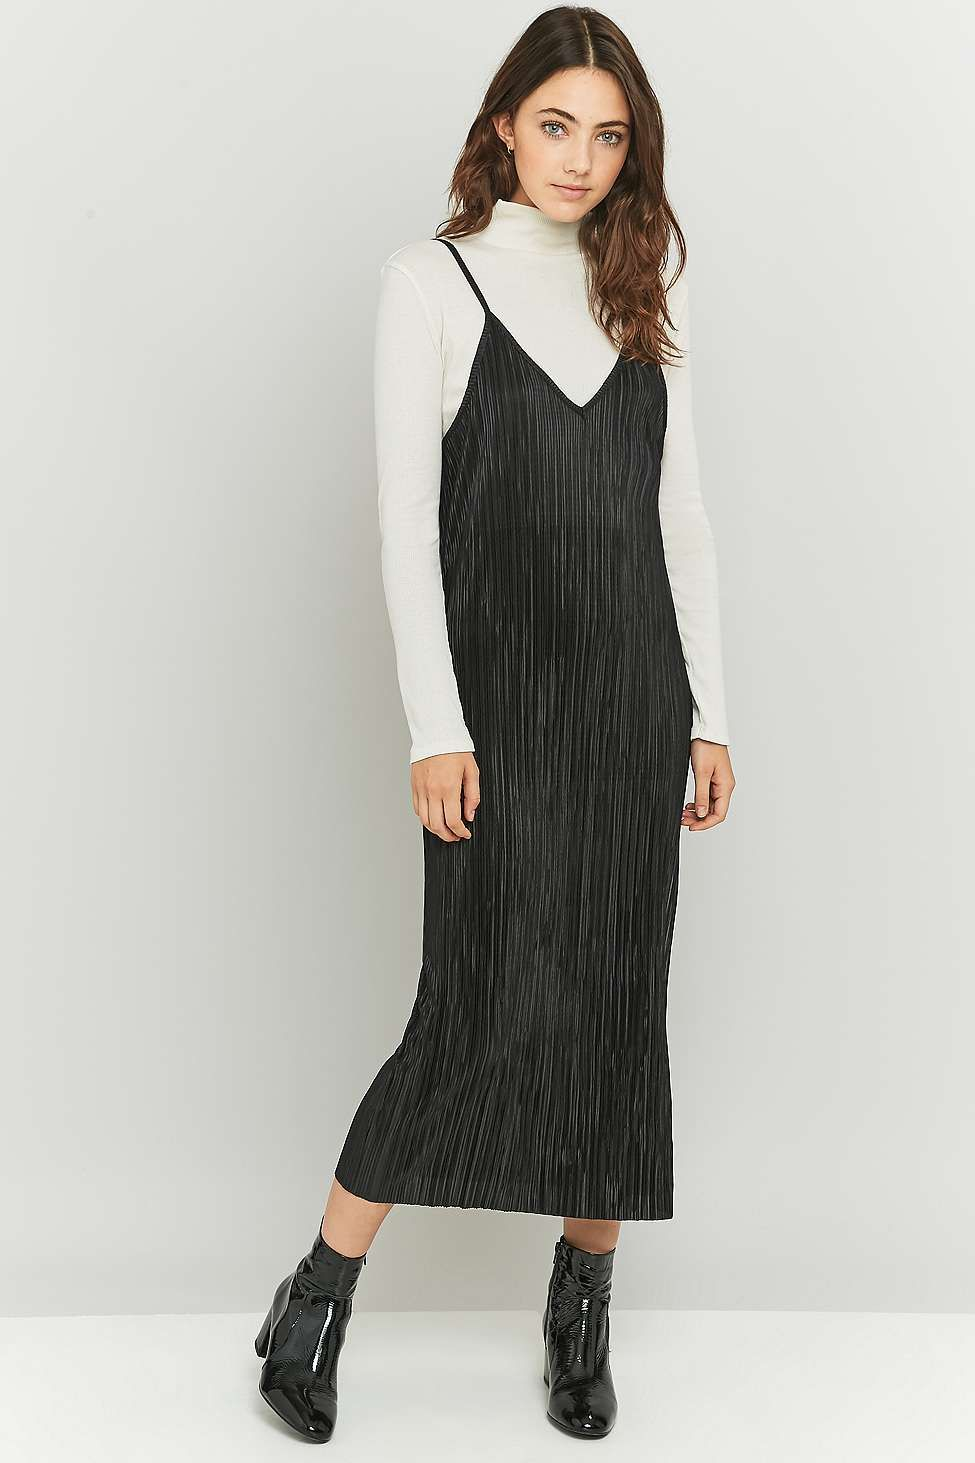 Urban Renewal Vintage Remnants Black Pleated Midi Slip Dress Slip Dress Black Pleated Dress Black Dress Outfit Casual [ 1463 x 975 Pixel ]